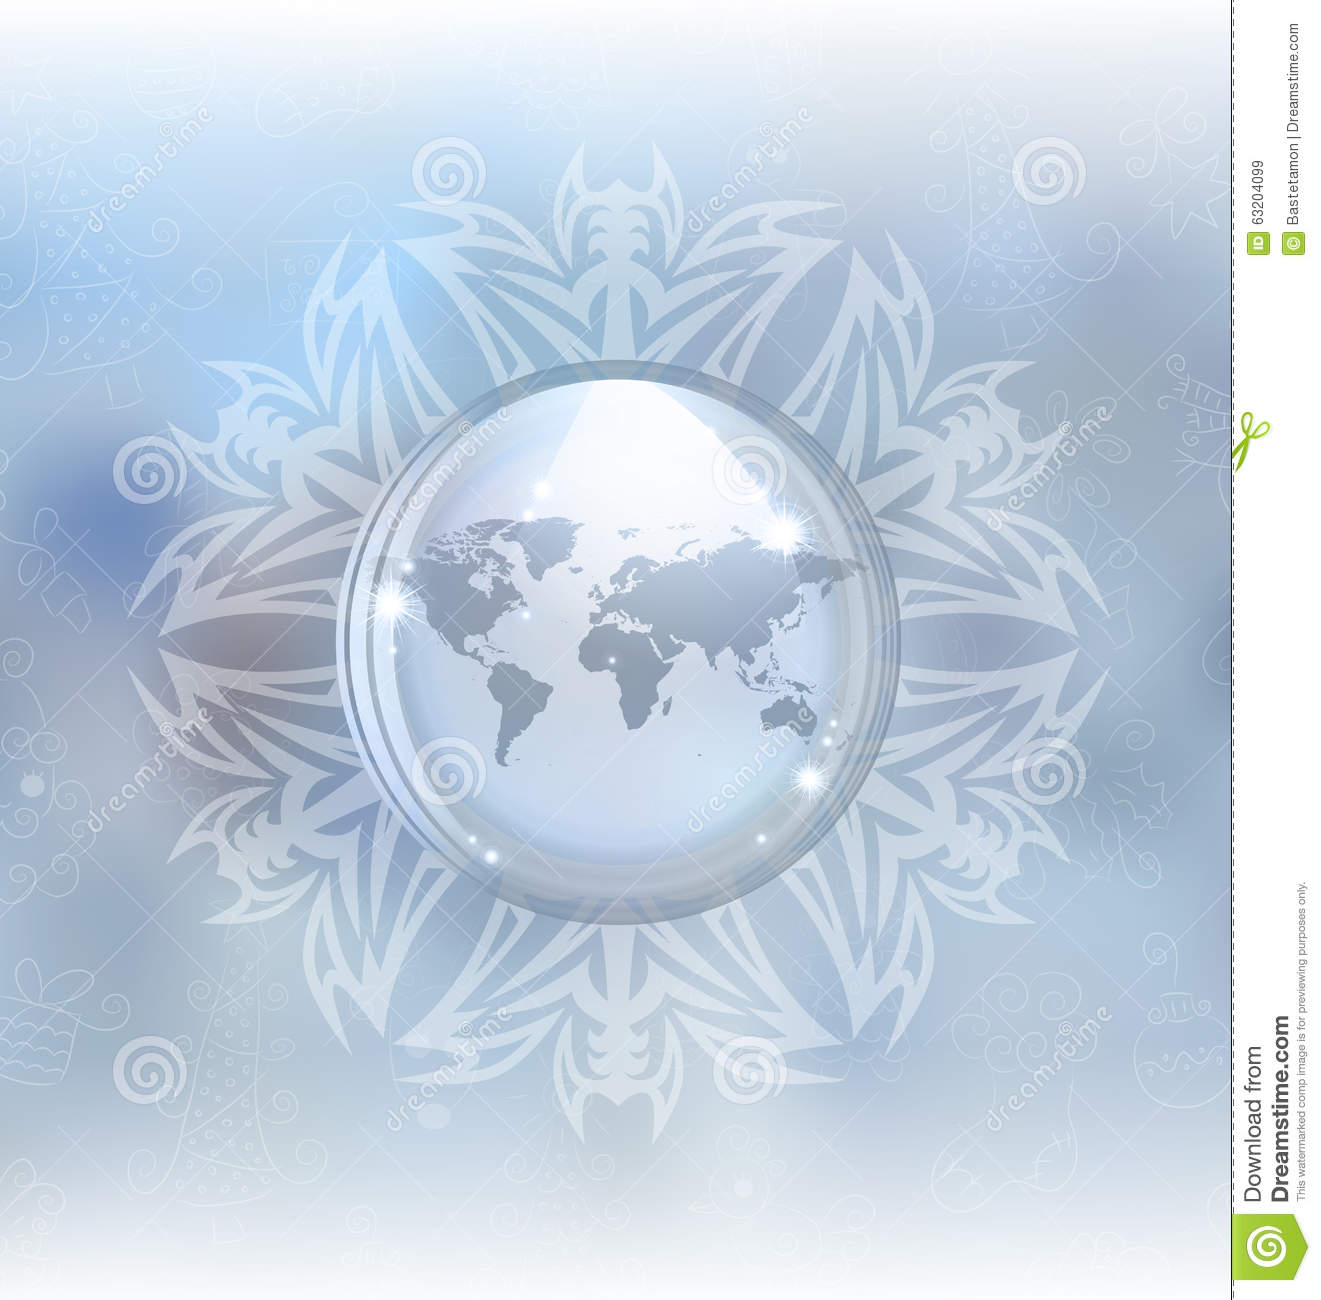 Snow globe with map stock vector illustration of frost 63204099 snow globe with map gumiabroncs Gallery